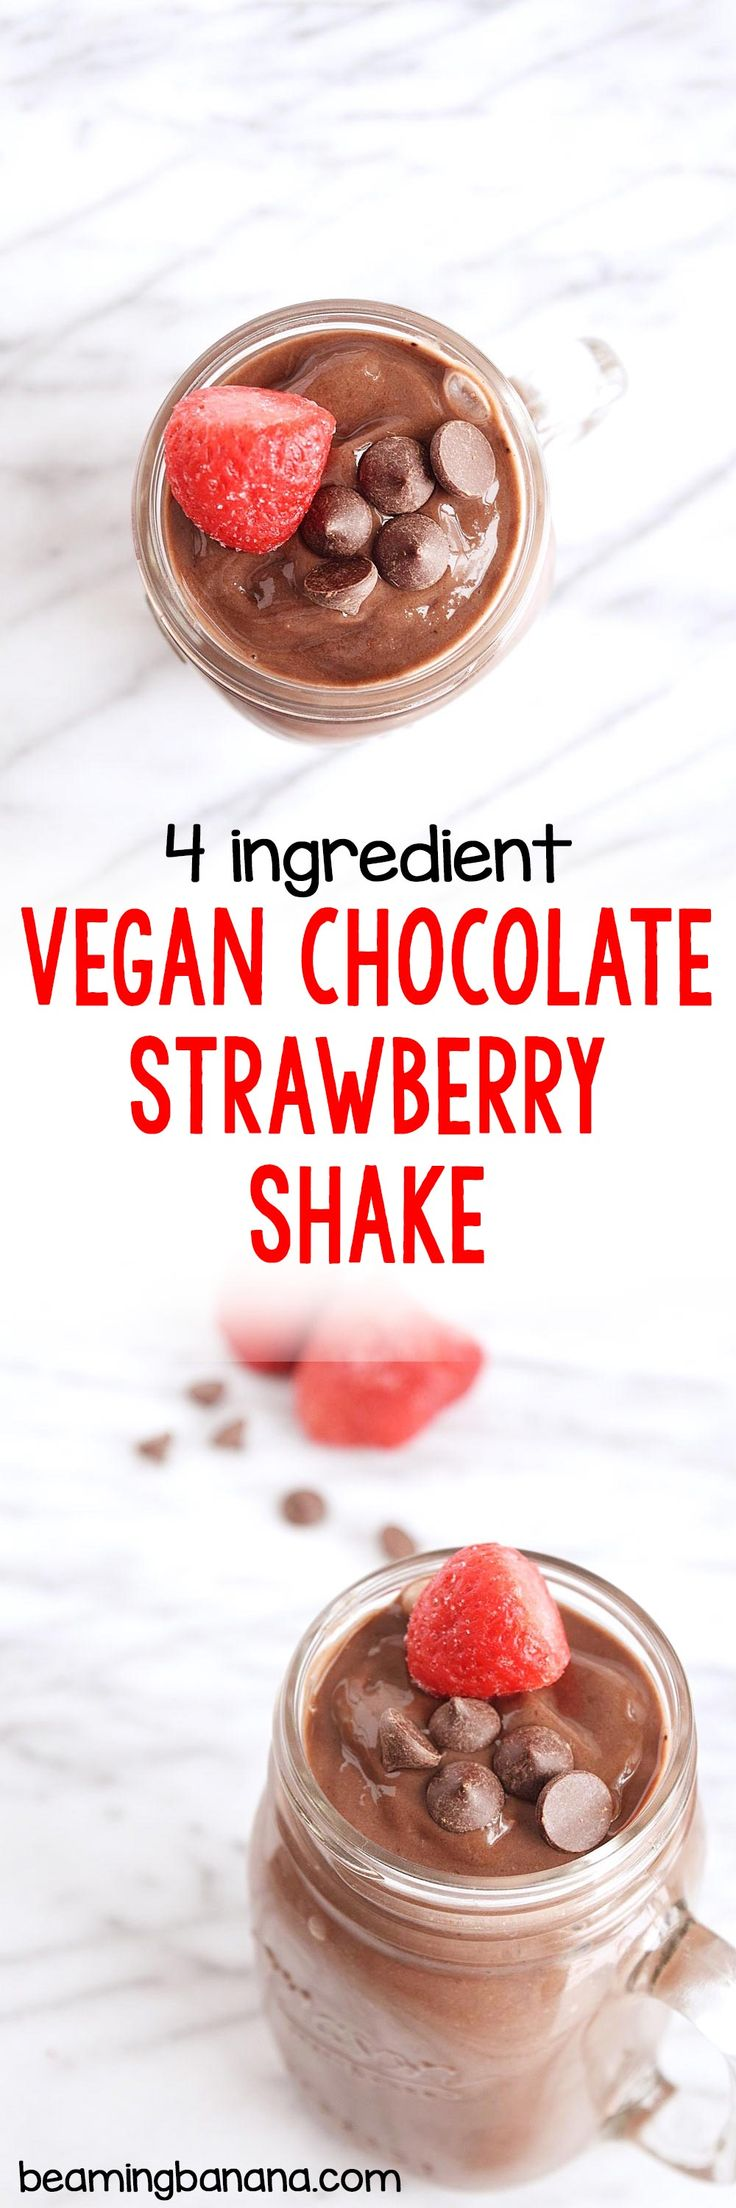 This vegan chocolate strawberry shake is so thick and creamy, and the perfect combination of rich chocolate and sweet strawberry flavor! Made with just 3 ingredients.